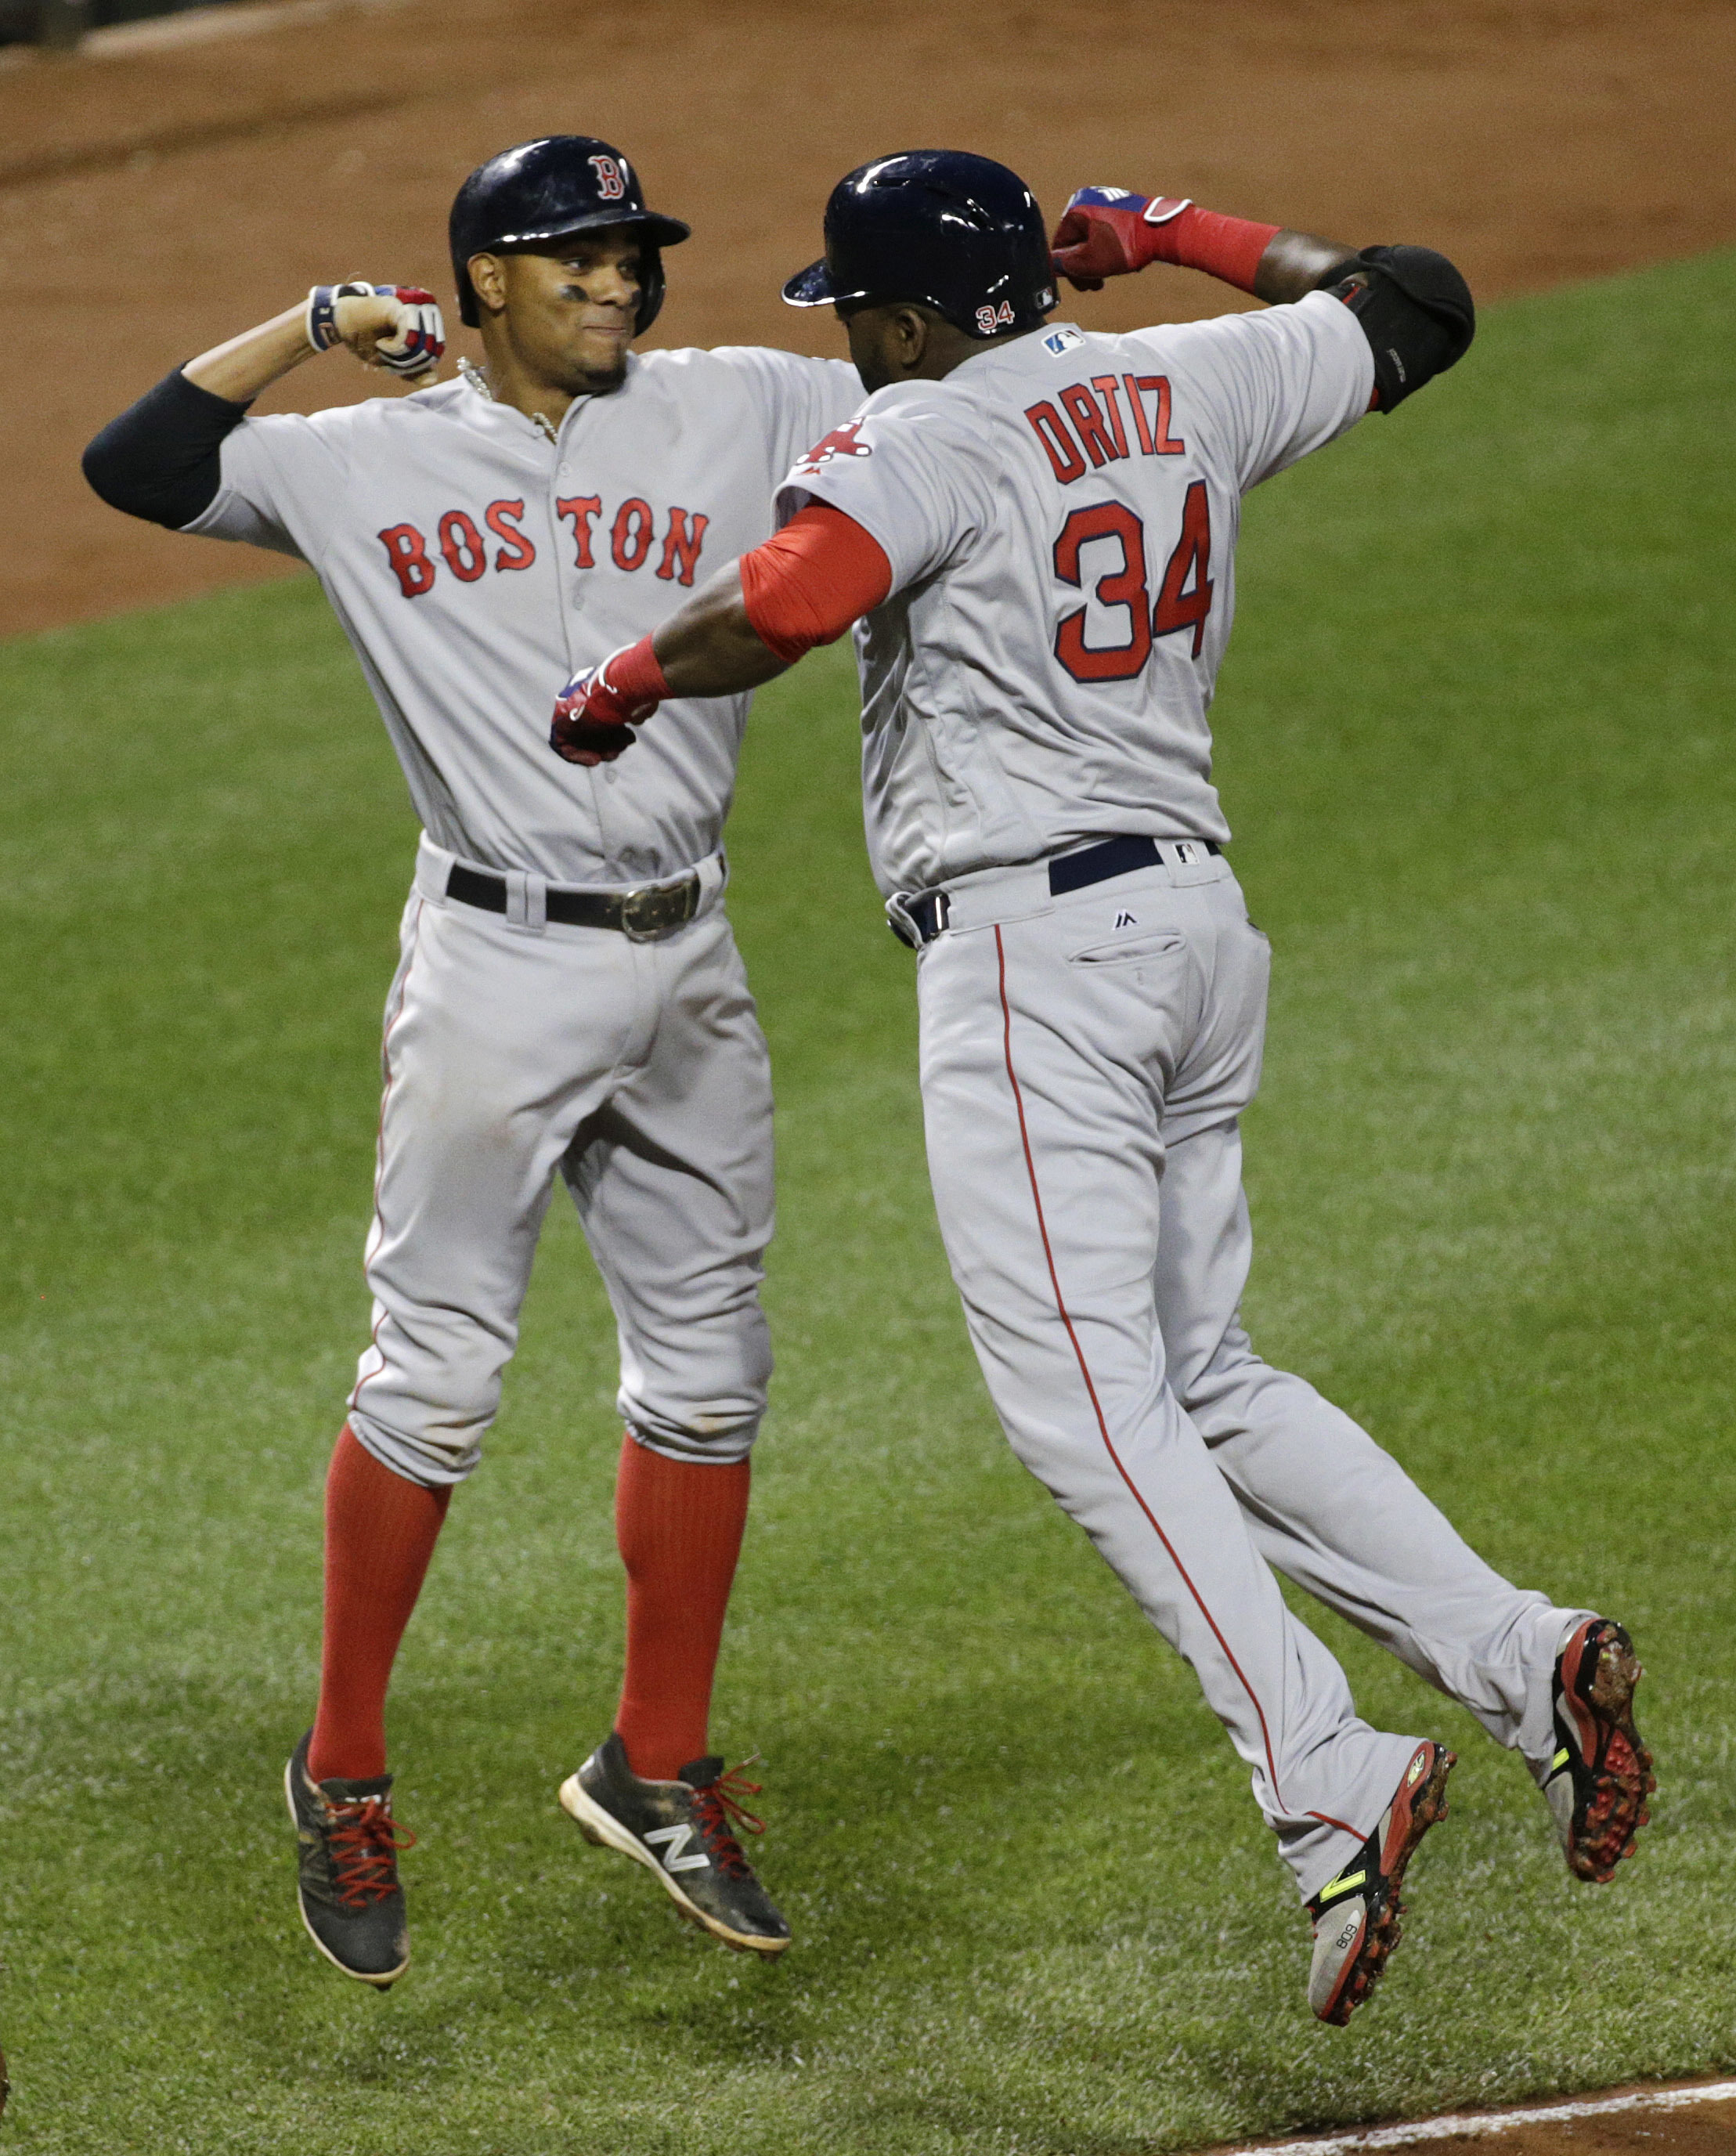 Boston Red Sox's Xander Bogaerts, left, and David Ortiz celebrate after Ortiz drove Bogaerts in on a three-run home run during the sixth inning of a baseball game against the Baltimore Orioles in Baltimore, Thursday, June 2, 2016. (AP Photo/Patrick Semans